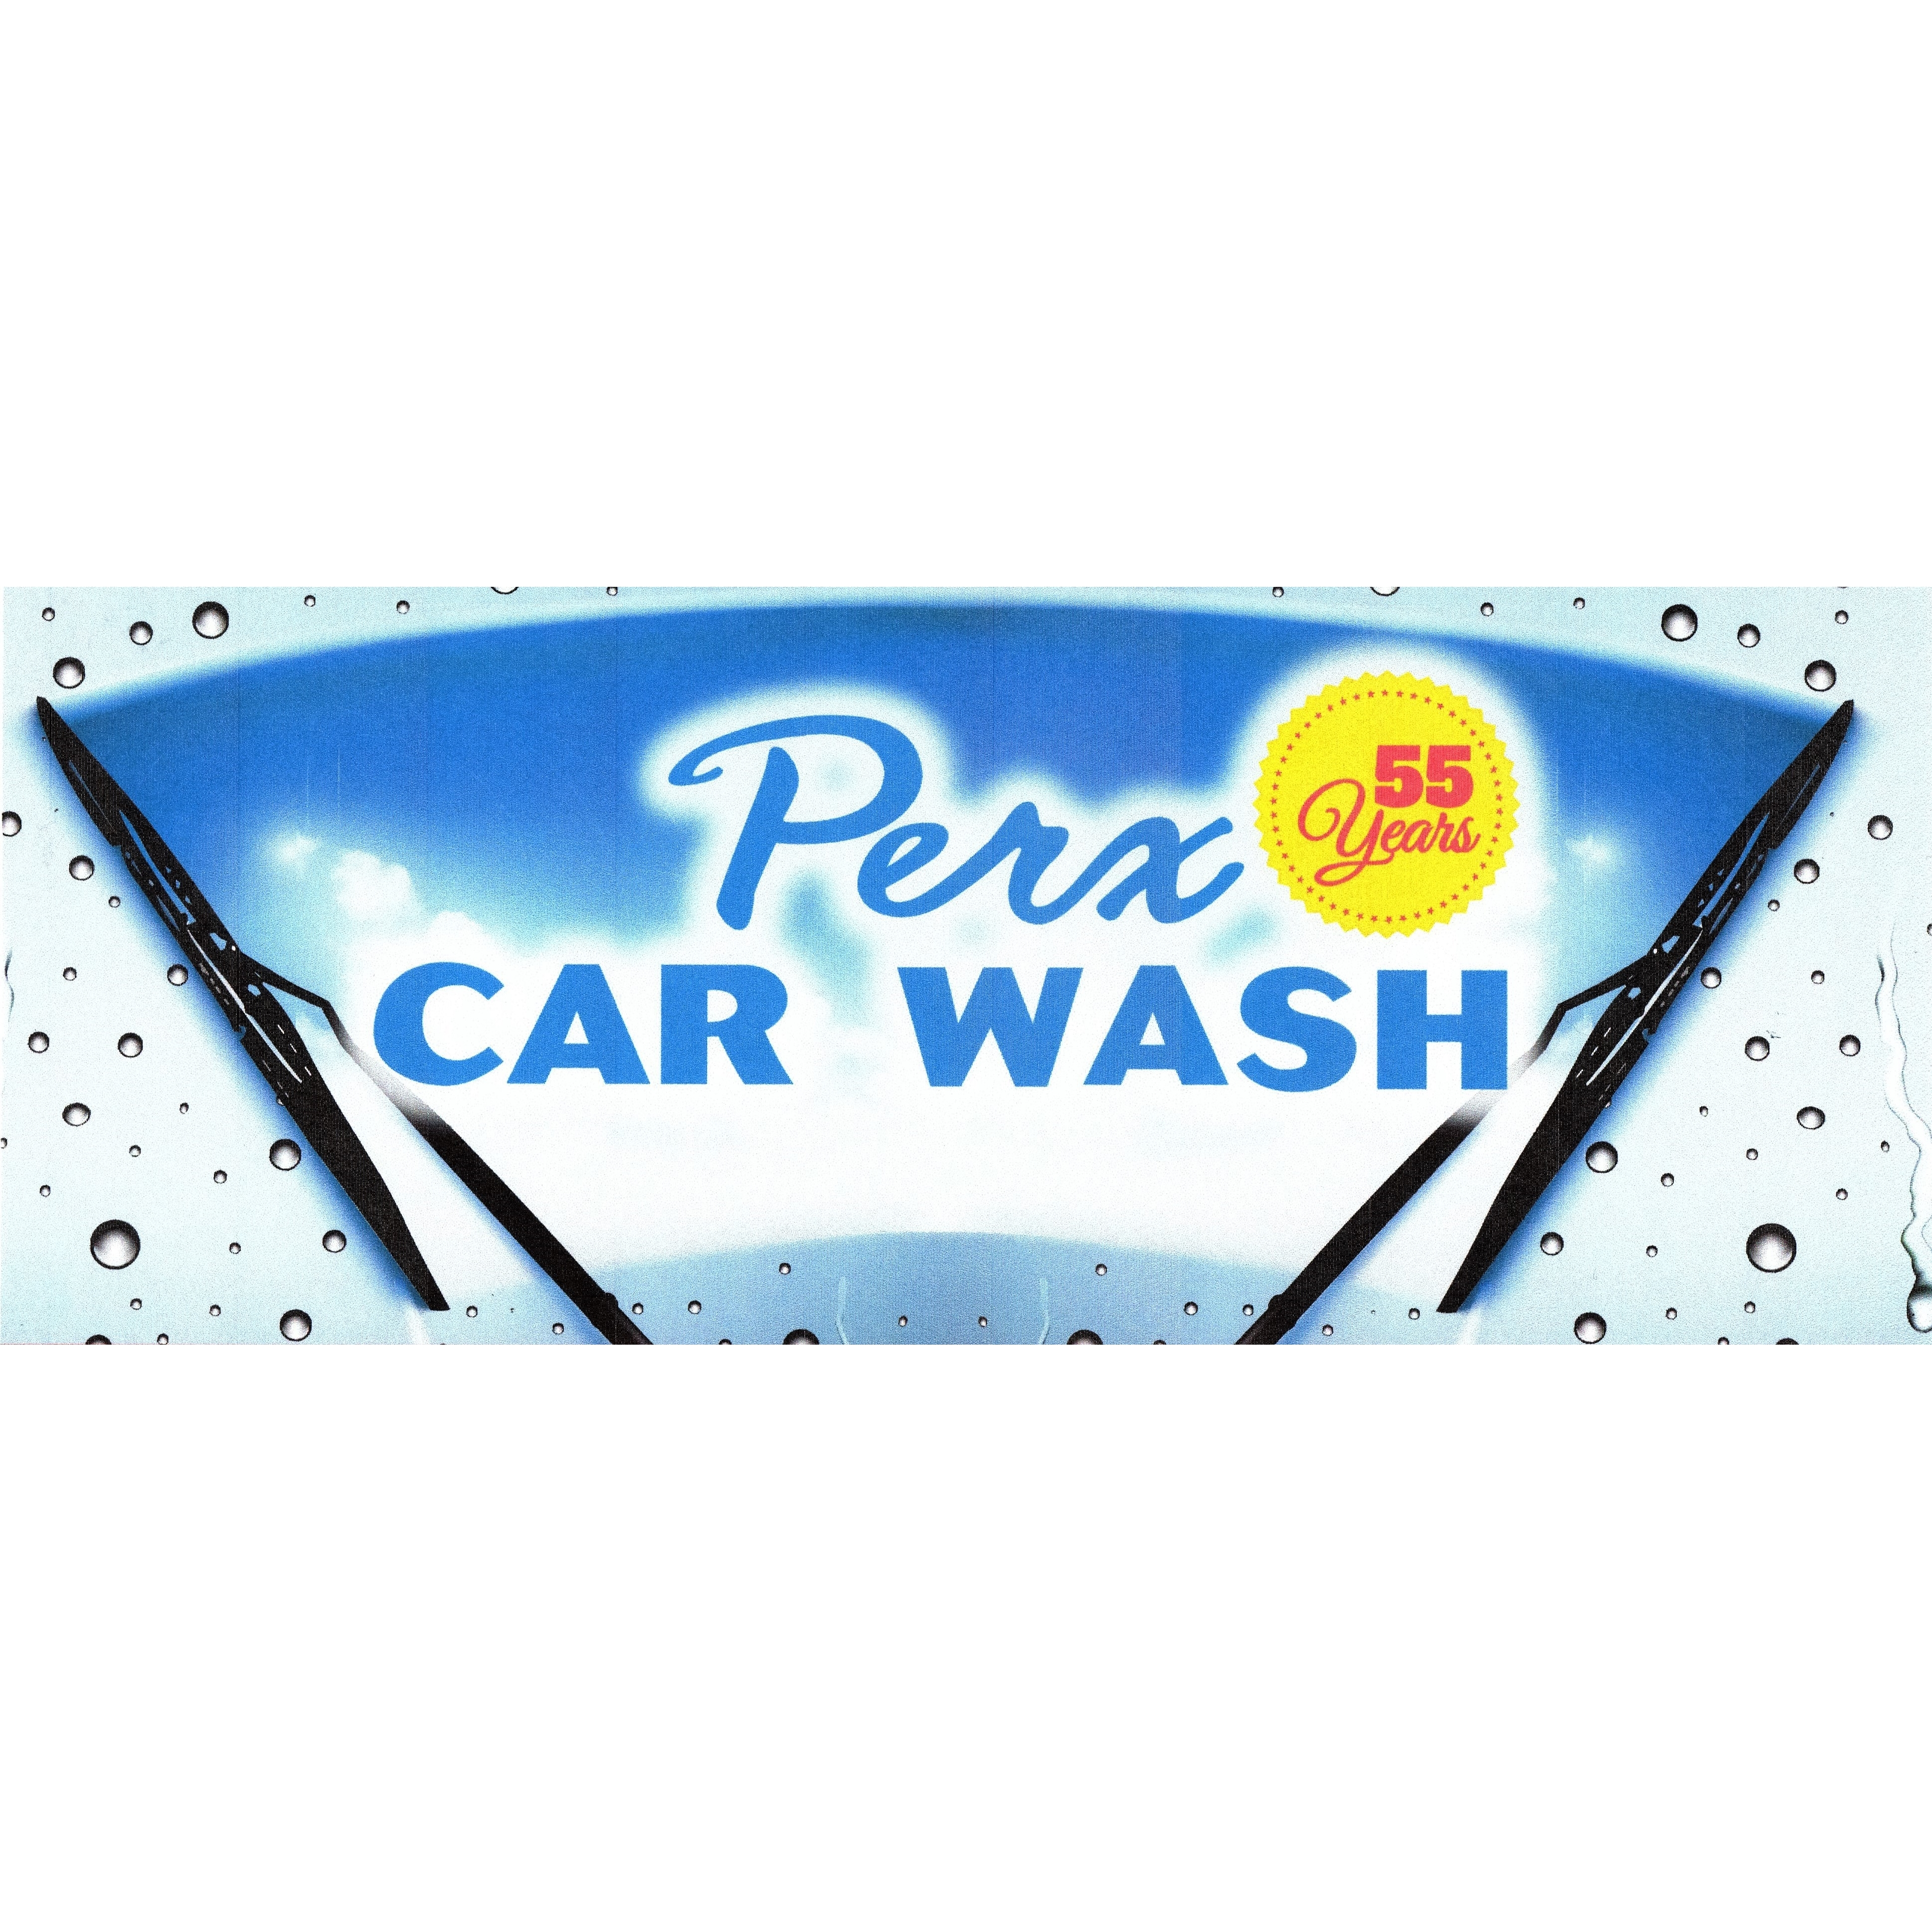 Perx Car Wash Coupons Near Me In Anderson